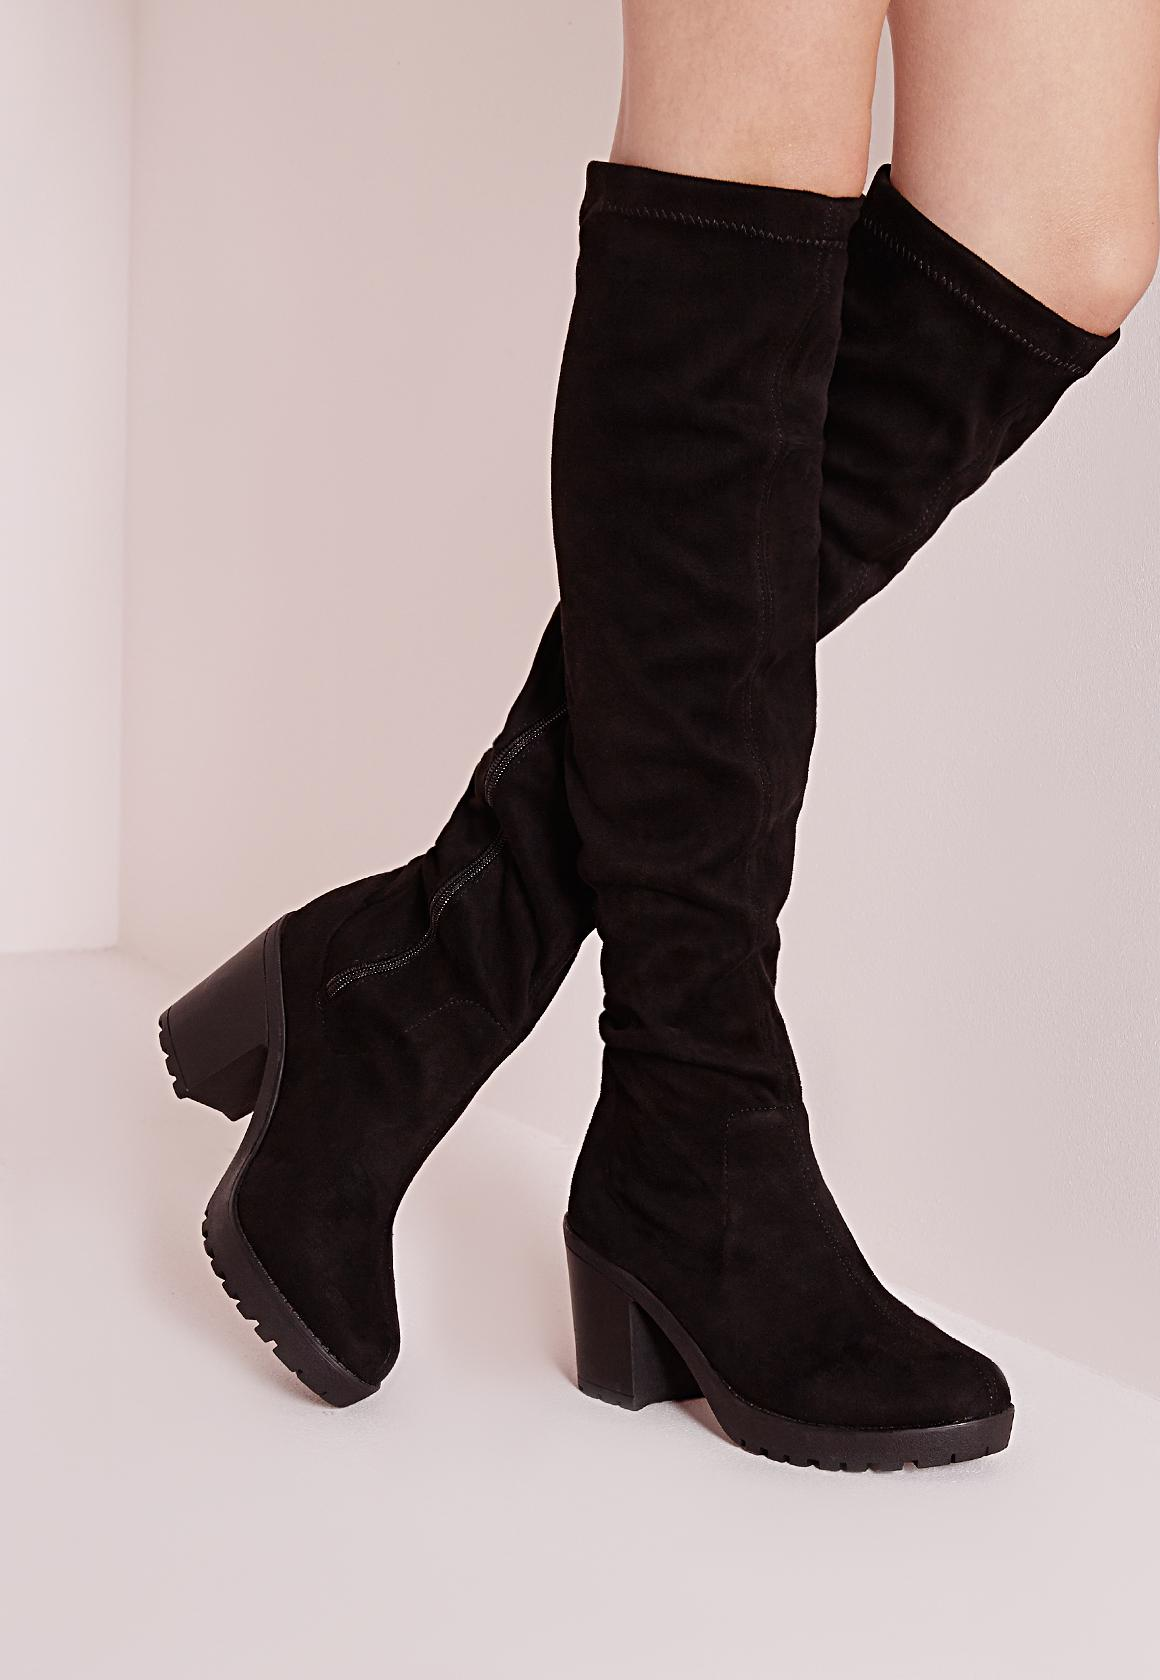 3cf7f6831c6 ... cleated low heel over the knee boots black. Previous Next